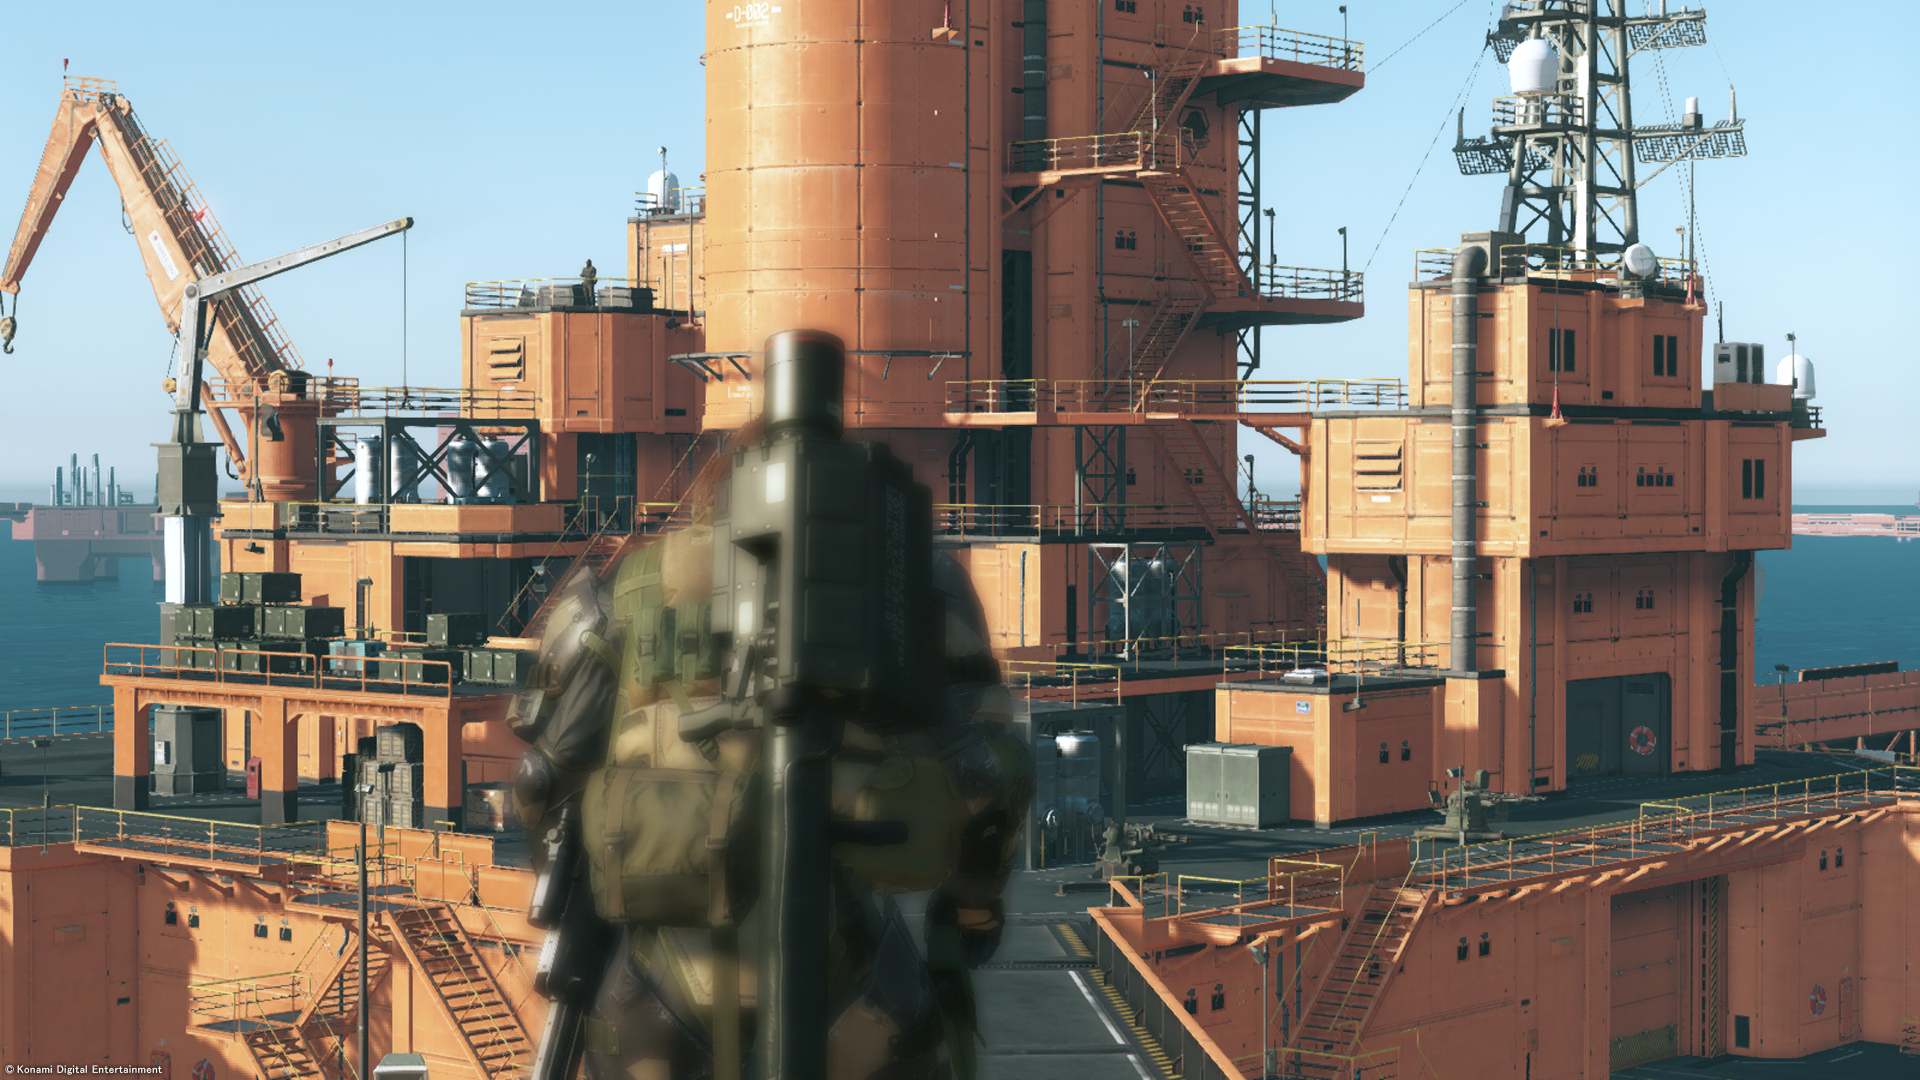 Metal Gear Solid V Definitive Edtn Region 2 Pictures Of Review Impressions 3 4 Enlarge Picture